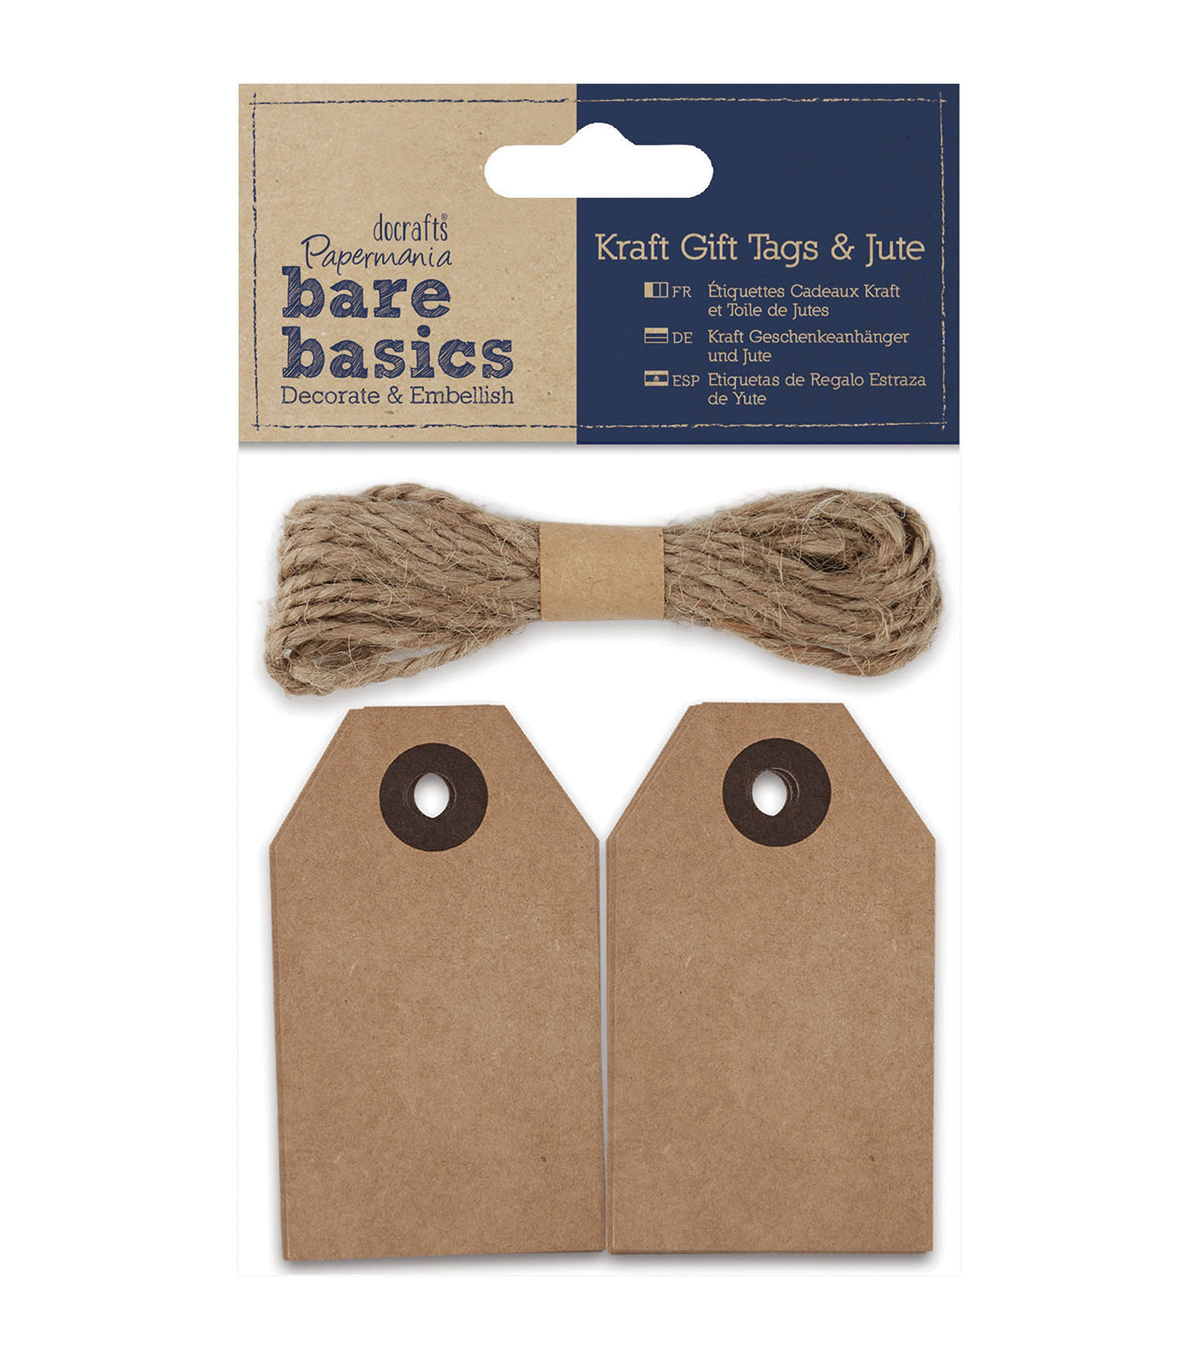 Papermania Bare Basics Natural Kraft Gift Cardstock Tags With Jute